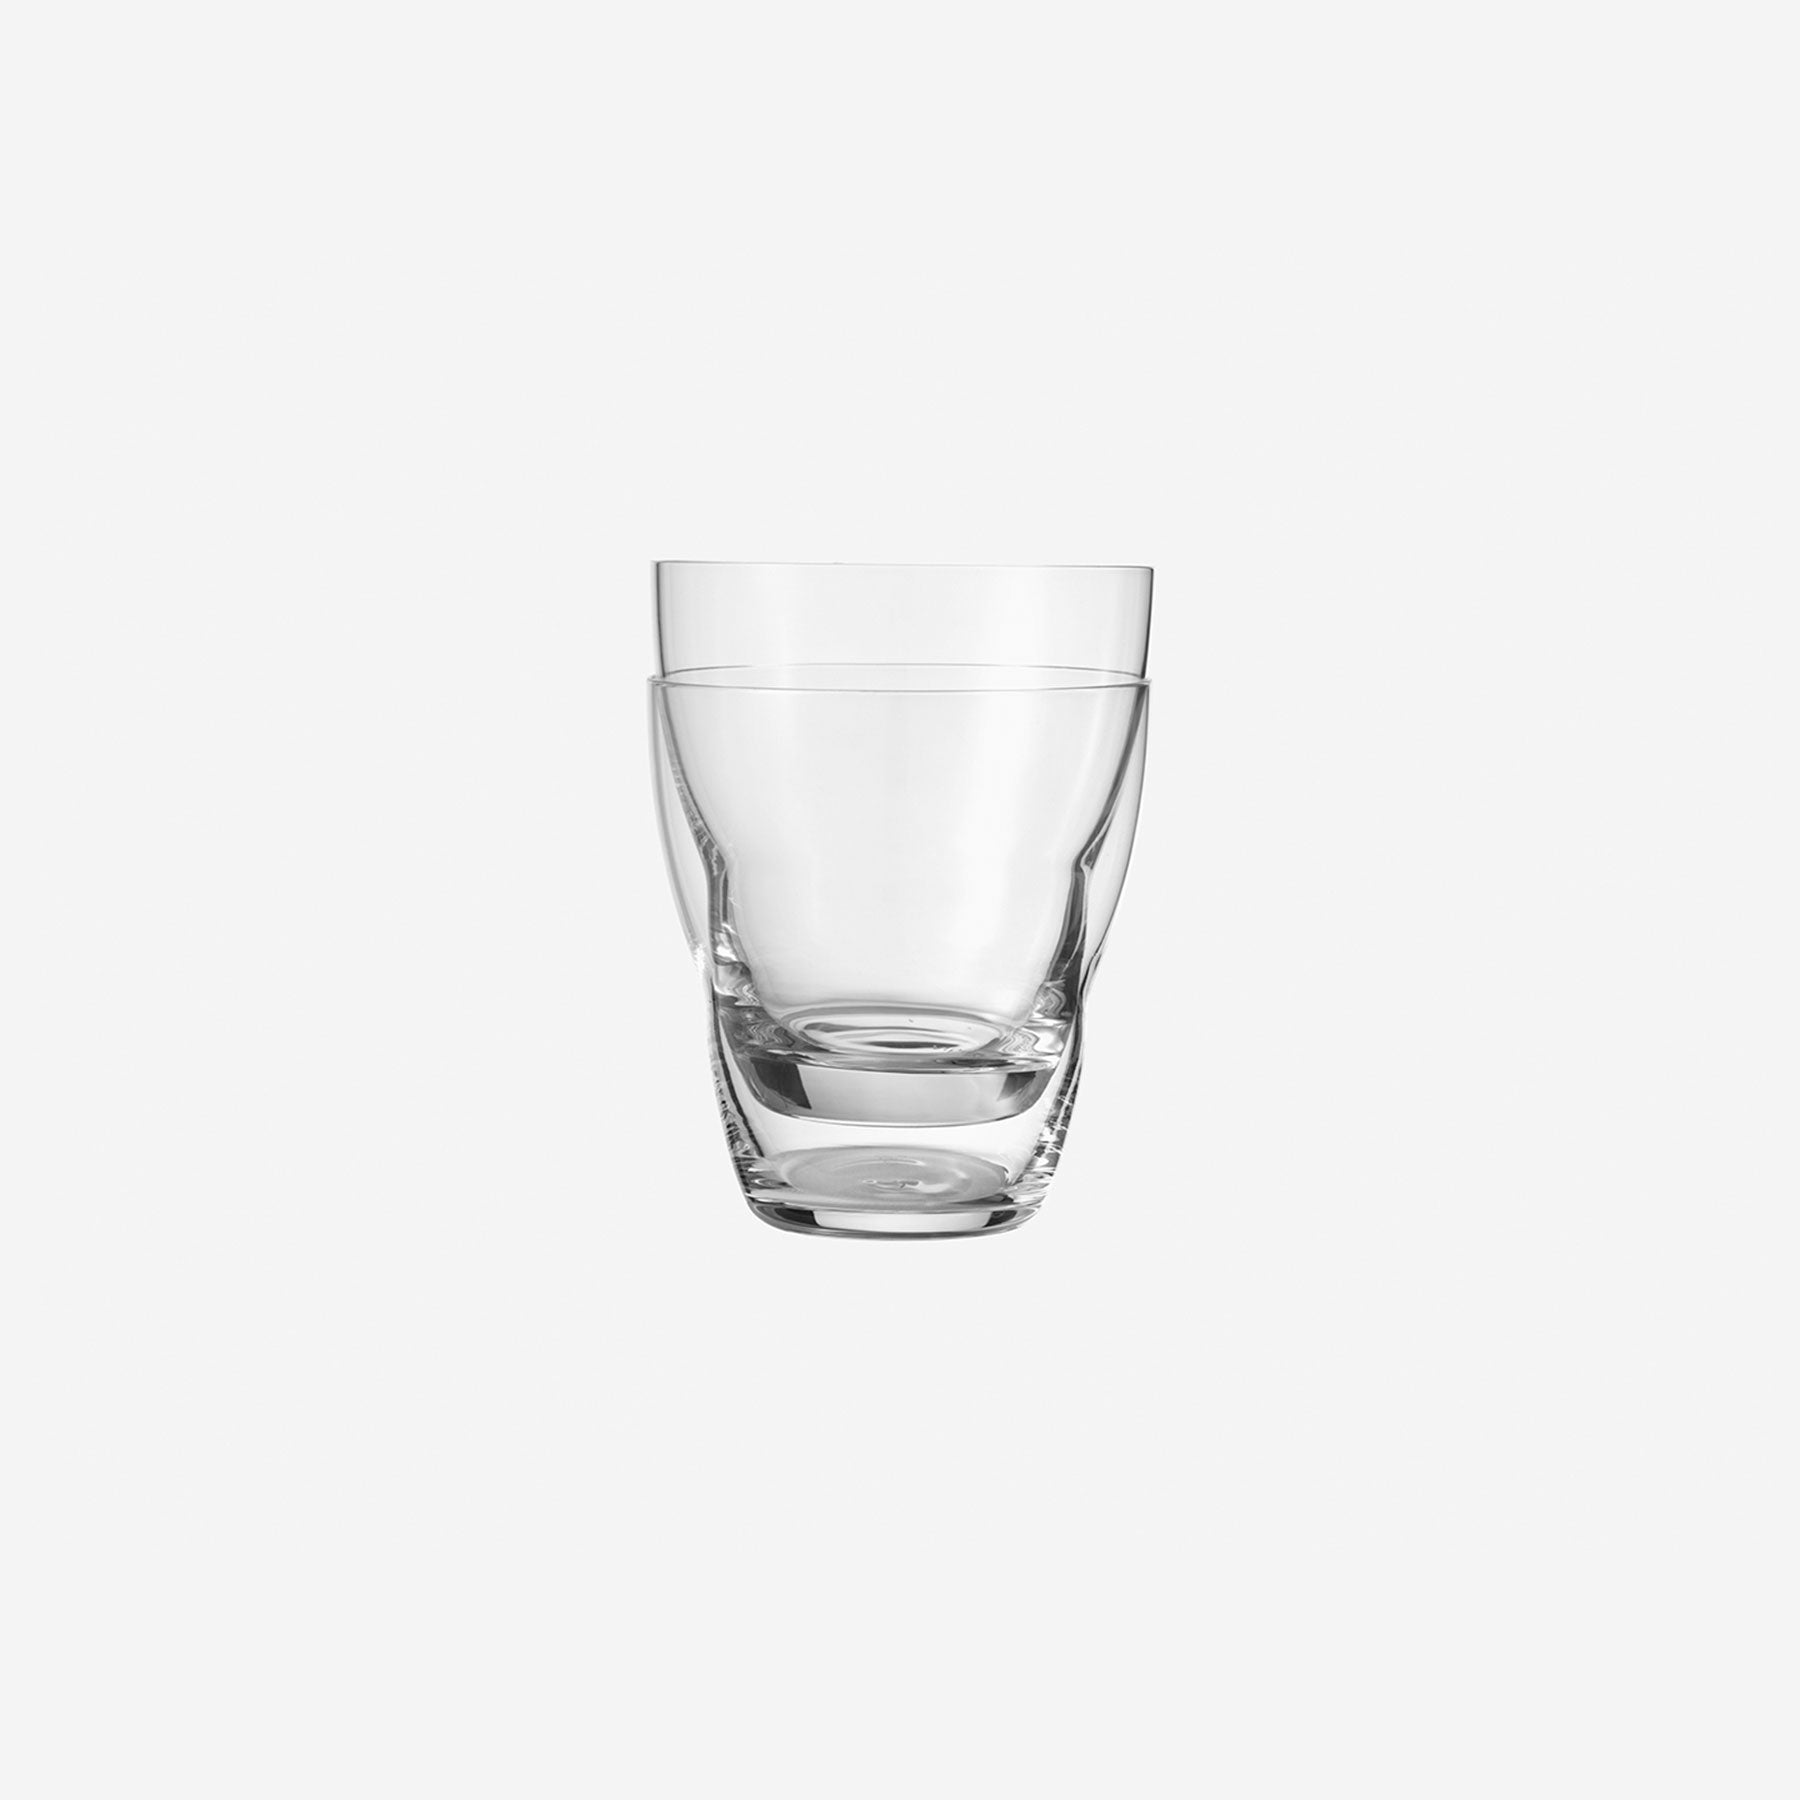 VIPP240 Glass 5 oz, 2 pcs.